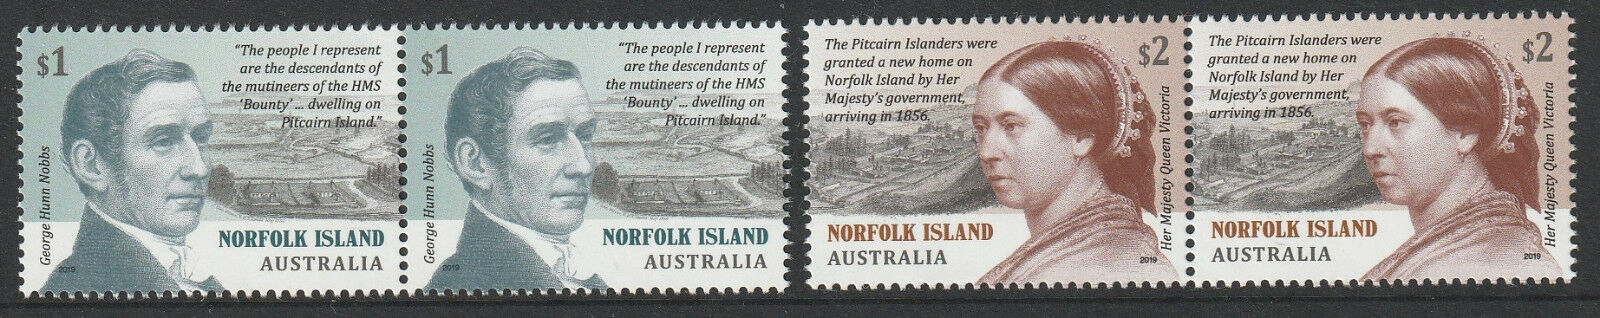 Norfolk Island - Pitcairn Settlement (January 22, 2019) pairs from sheet stamps